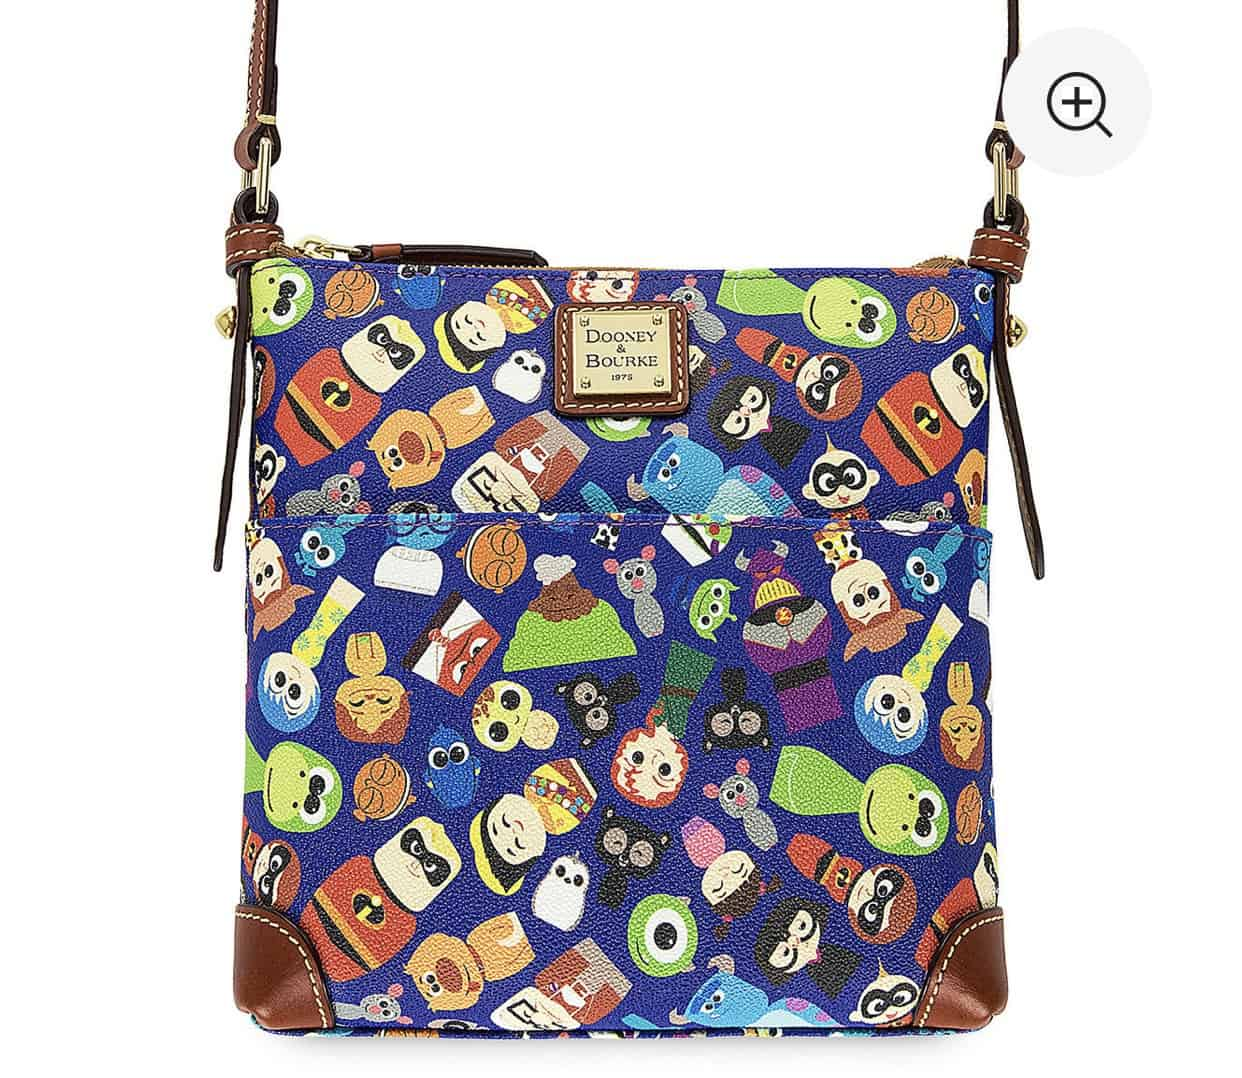 Dooney and Bourke Disney Bags 7